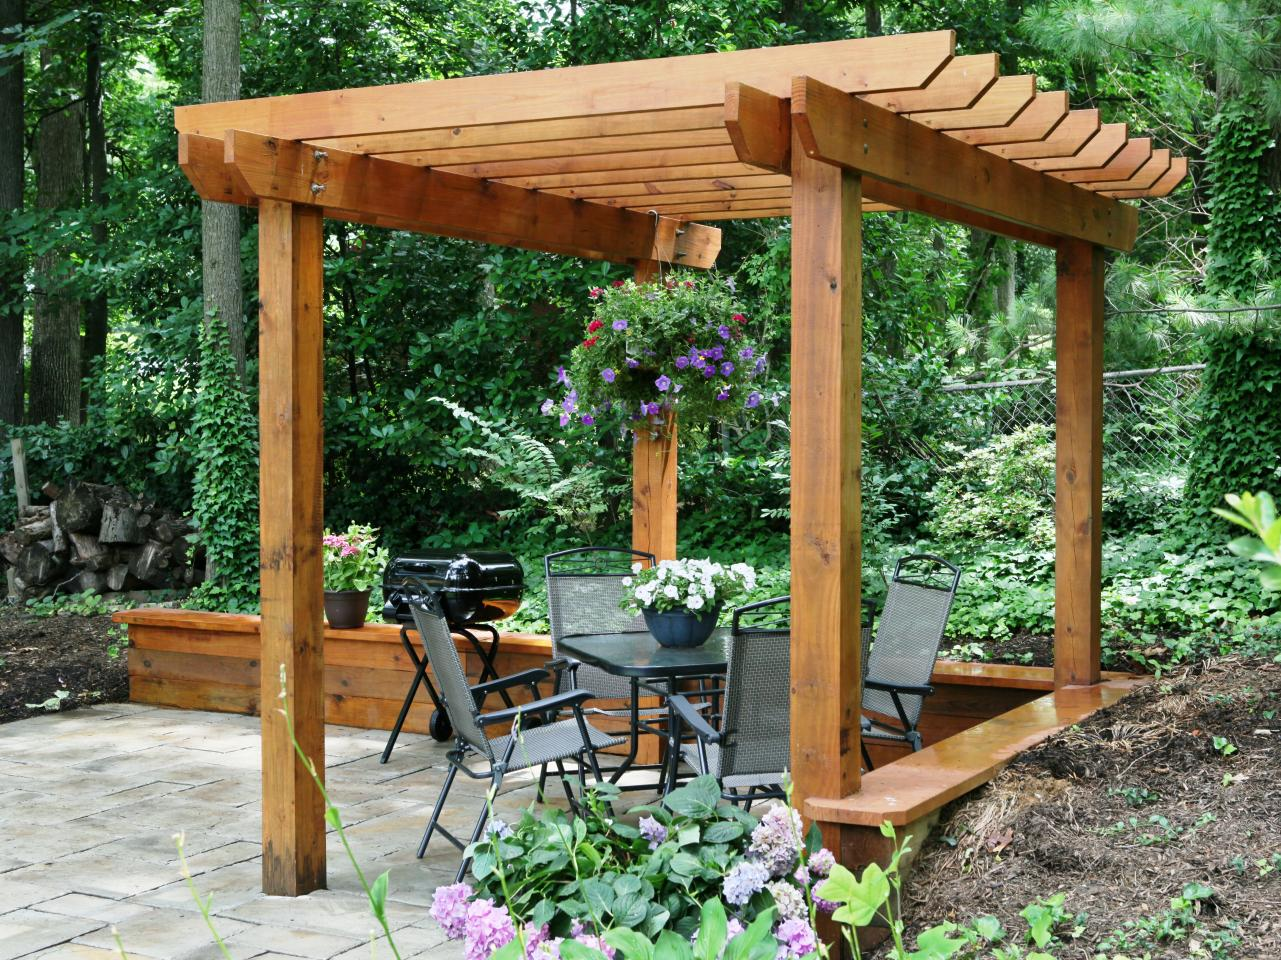 top 20 pergola designs plus their costs diy home improvement ideas 24h site plans for. Black Bedroom Furniture Sets. Home Design Ideas